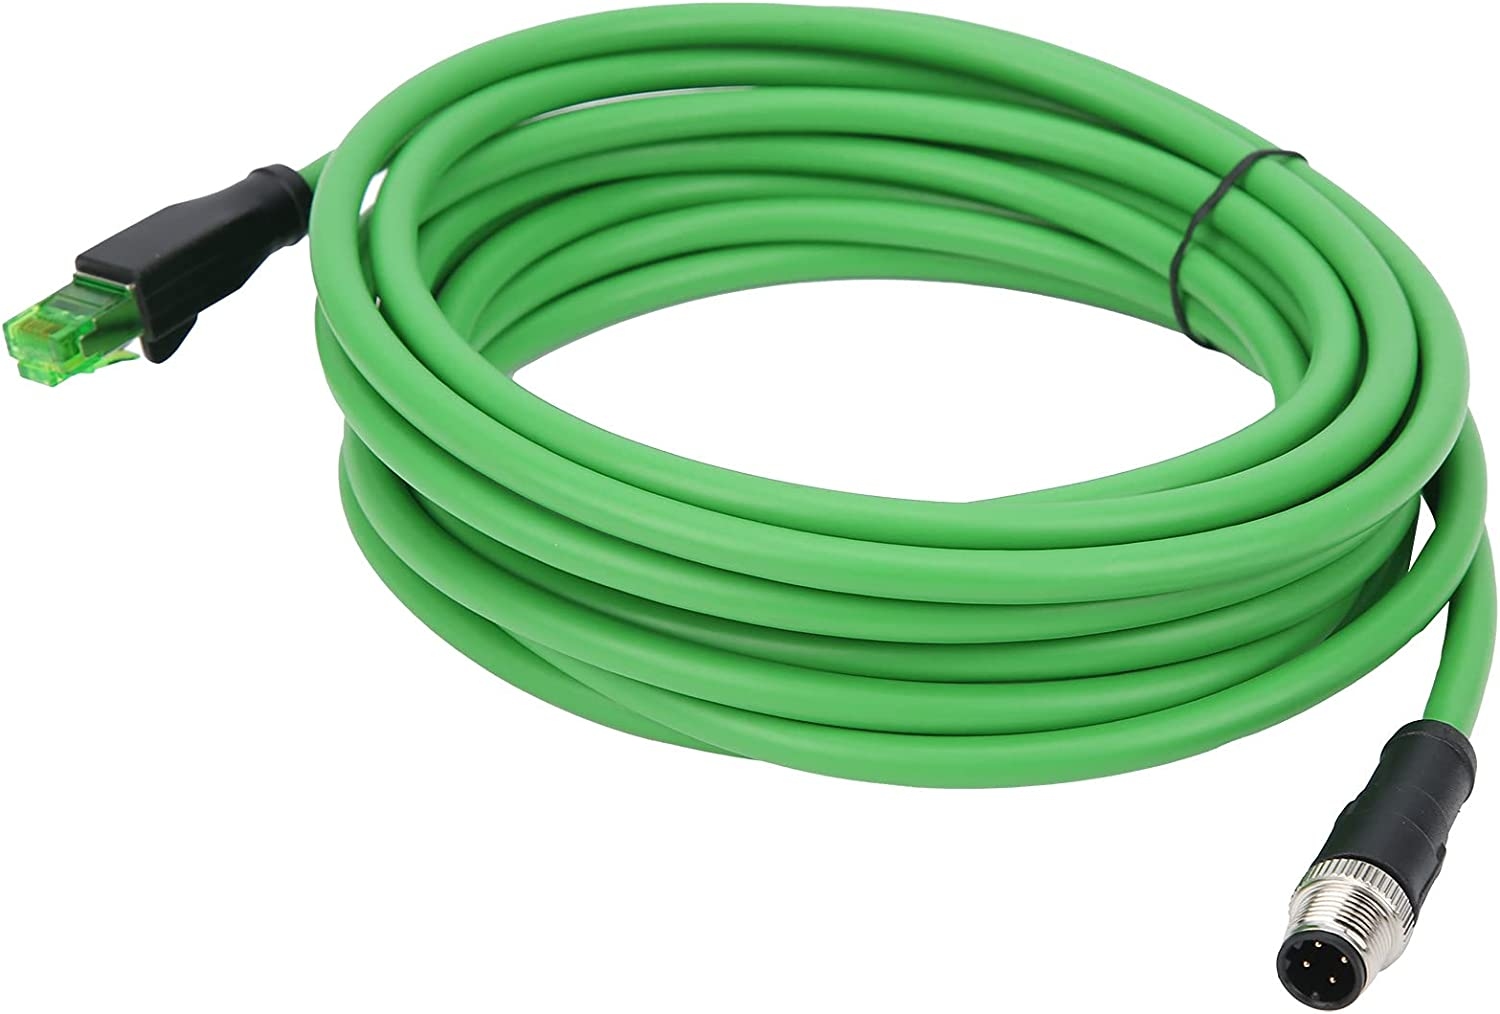 M12 Philadelphia Mall To Rj45 Industrial Ethernet Cable Ip67 Connectin Recommended Waterproof